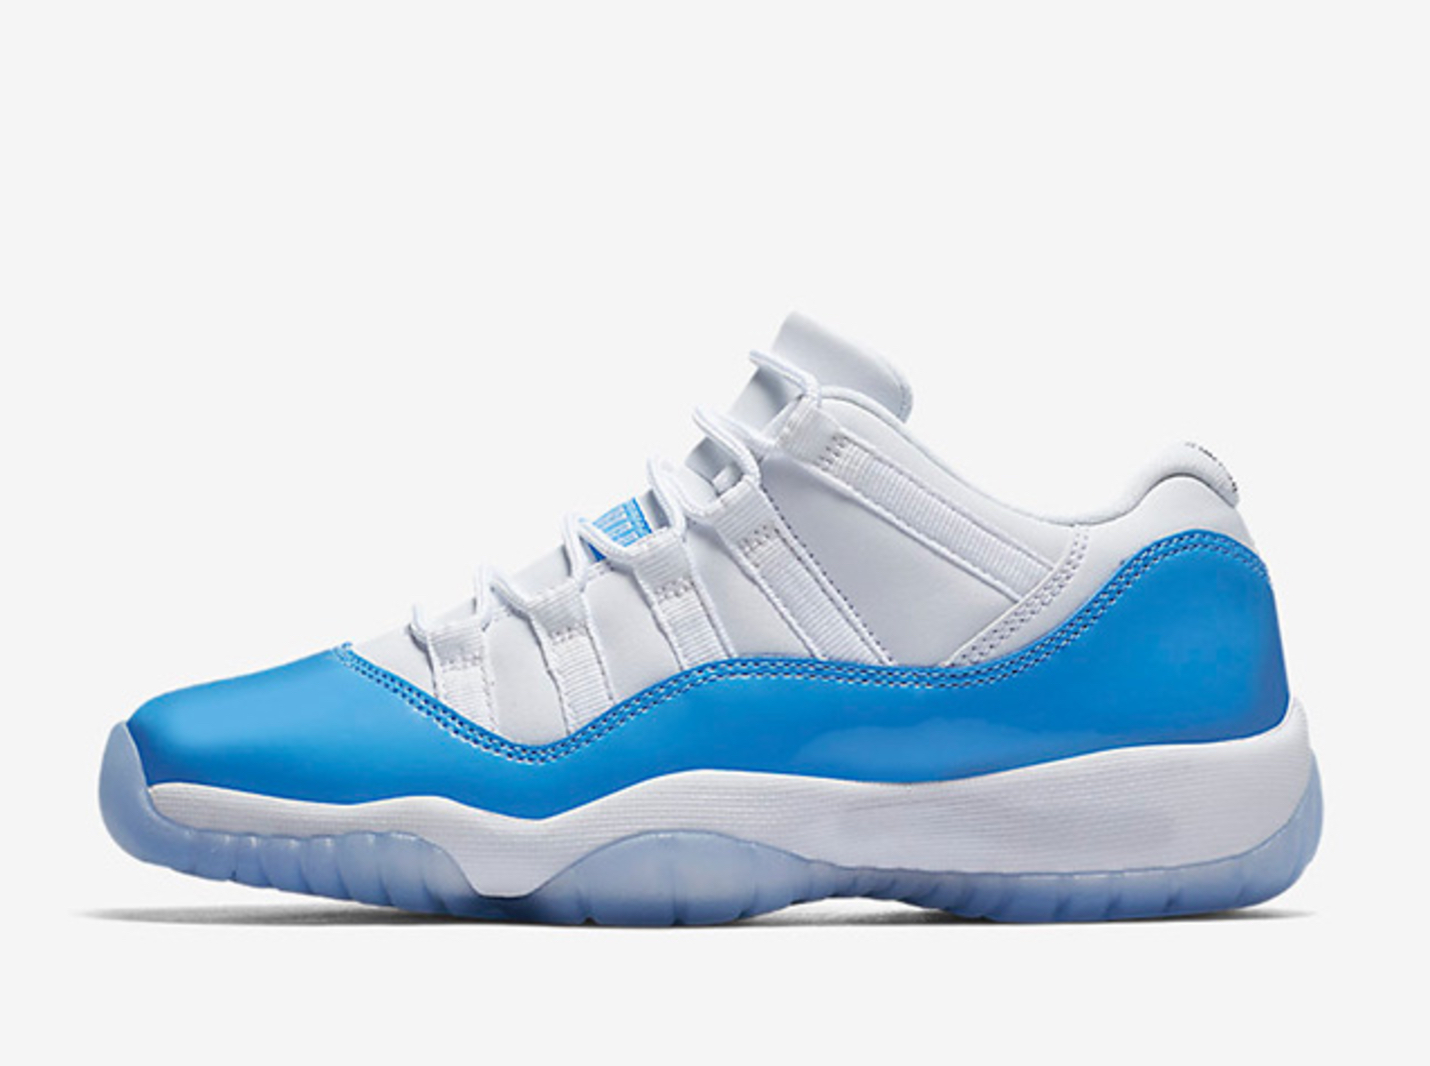 best sneakers c5243 cd467 Two Jordan 11 Retro Lows for 2017 - University Blue and ...